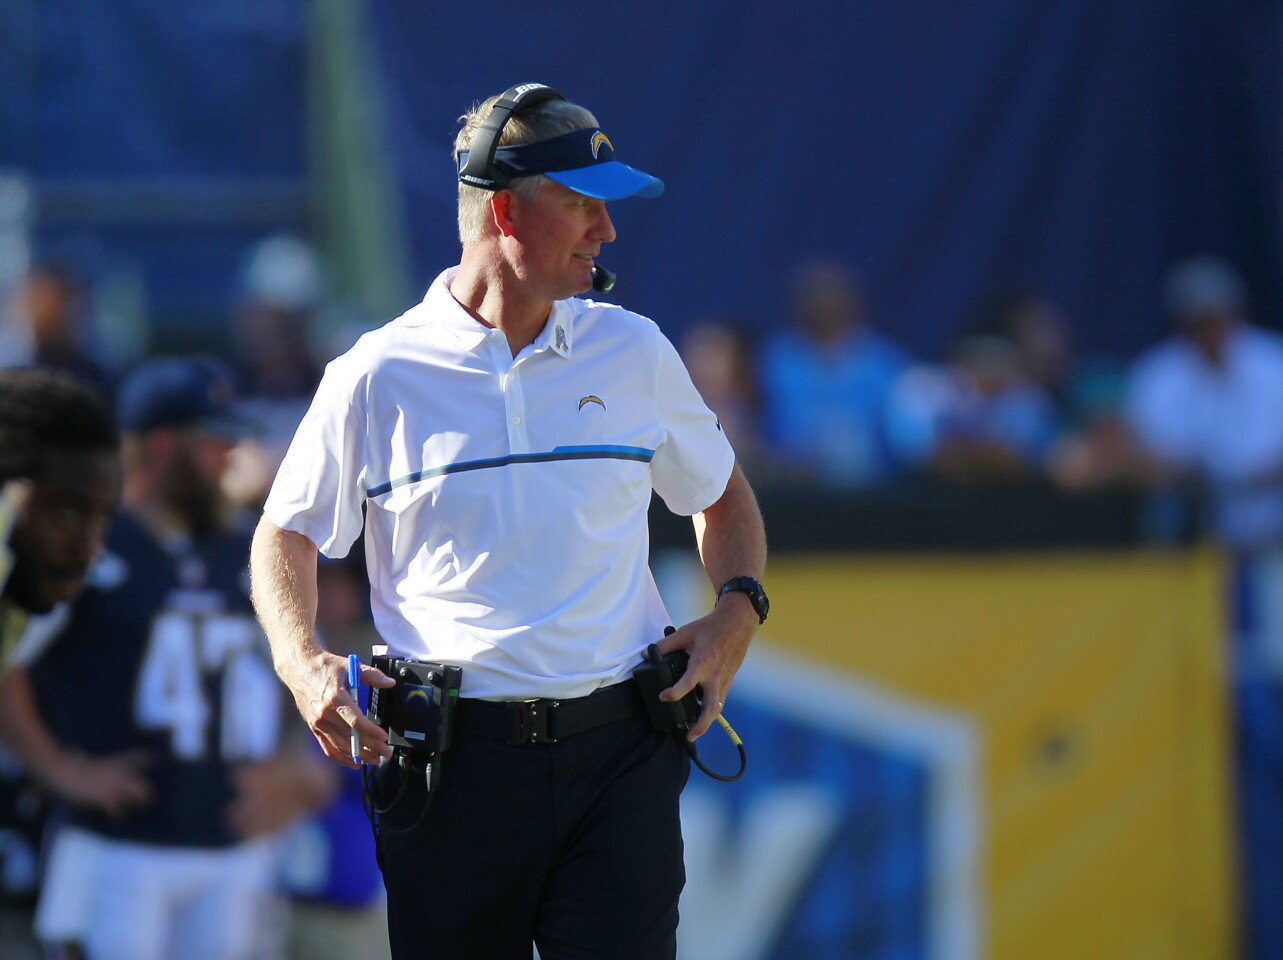 The San Diego Chargers coach have said goodbye to coach Mike McCoy after a sorry 2016 season and no playoffs. Here's a look at the pros and cons of the chances for nine top prospects for the job (whether it's in L.A. or San Diego.)